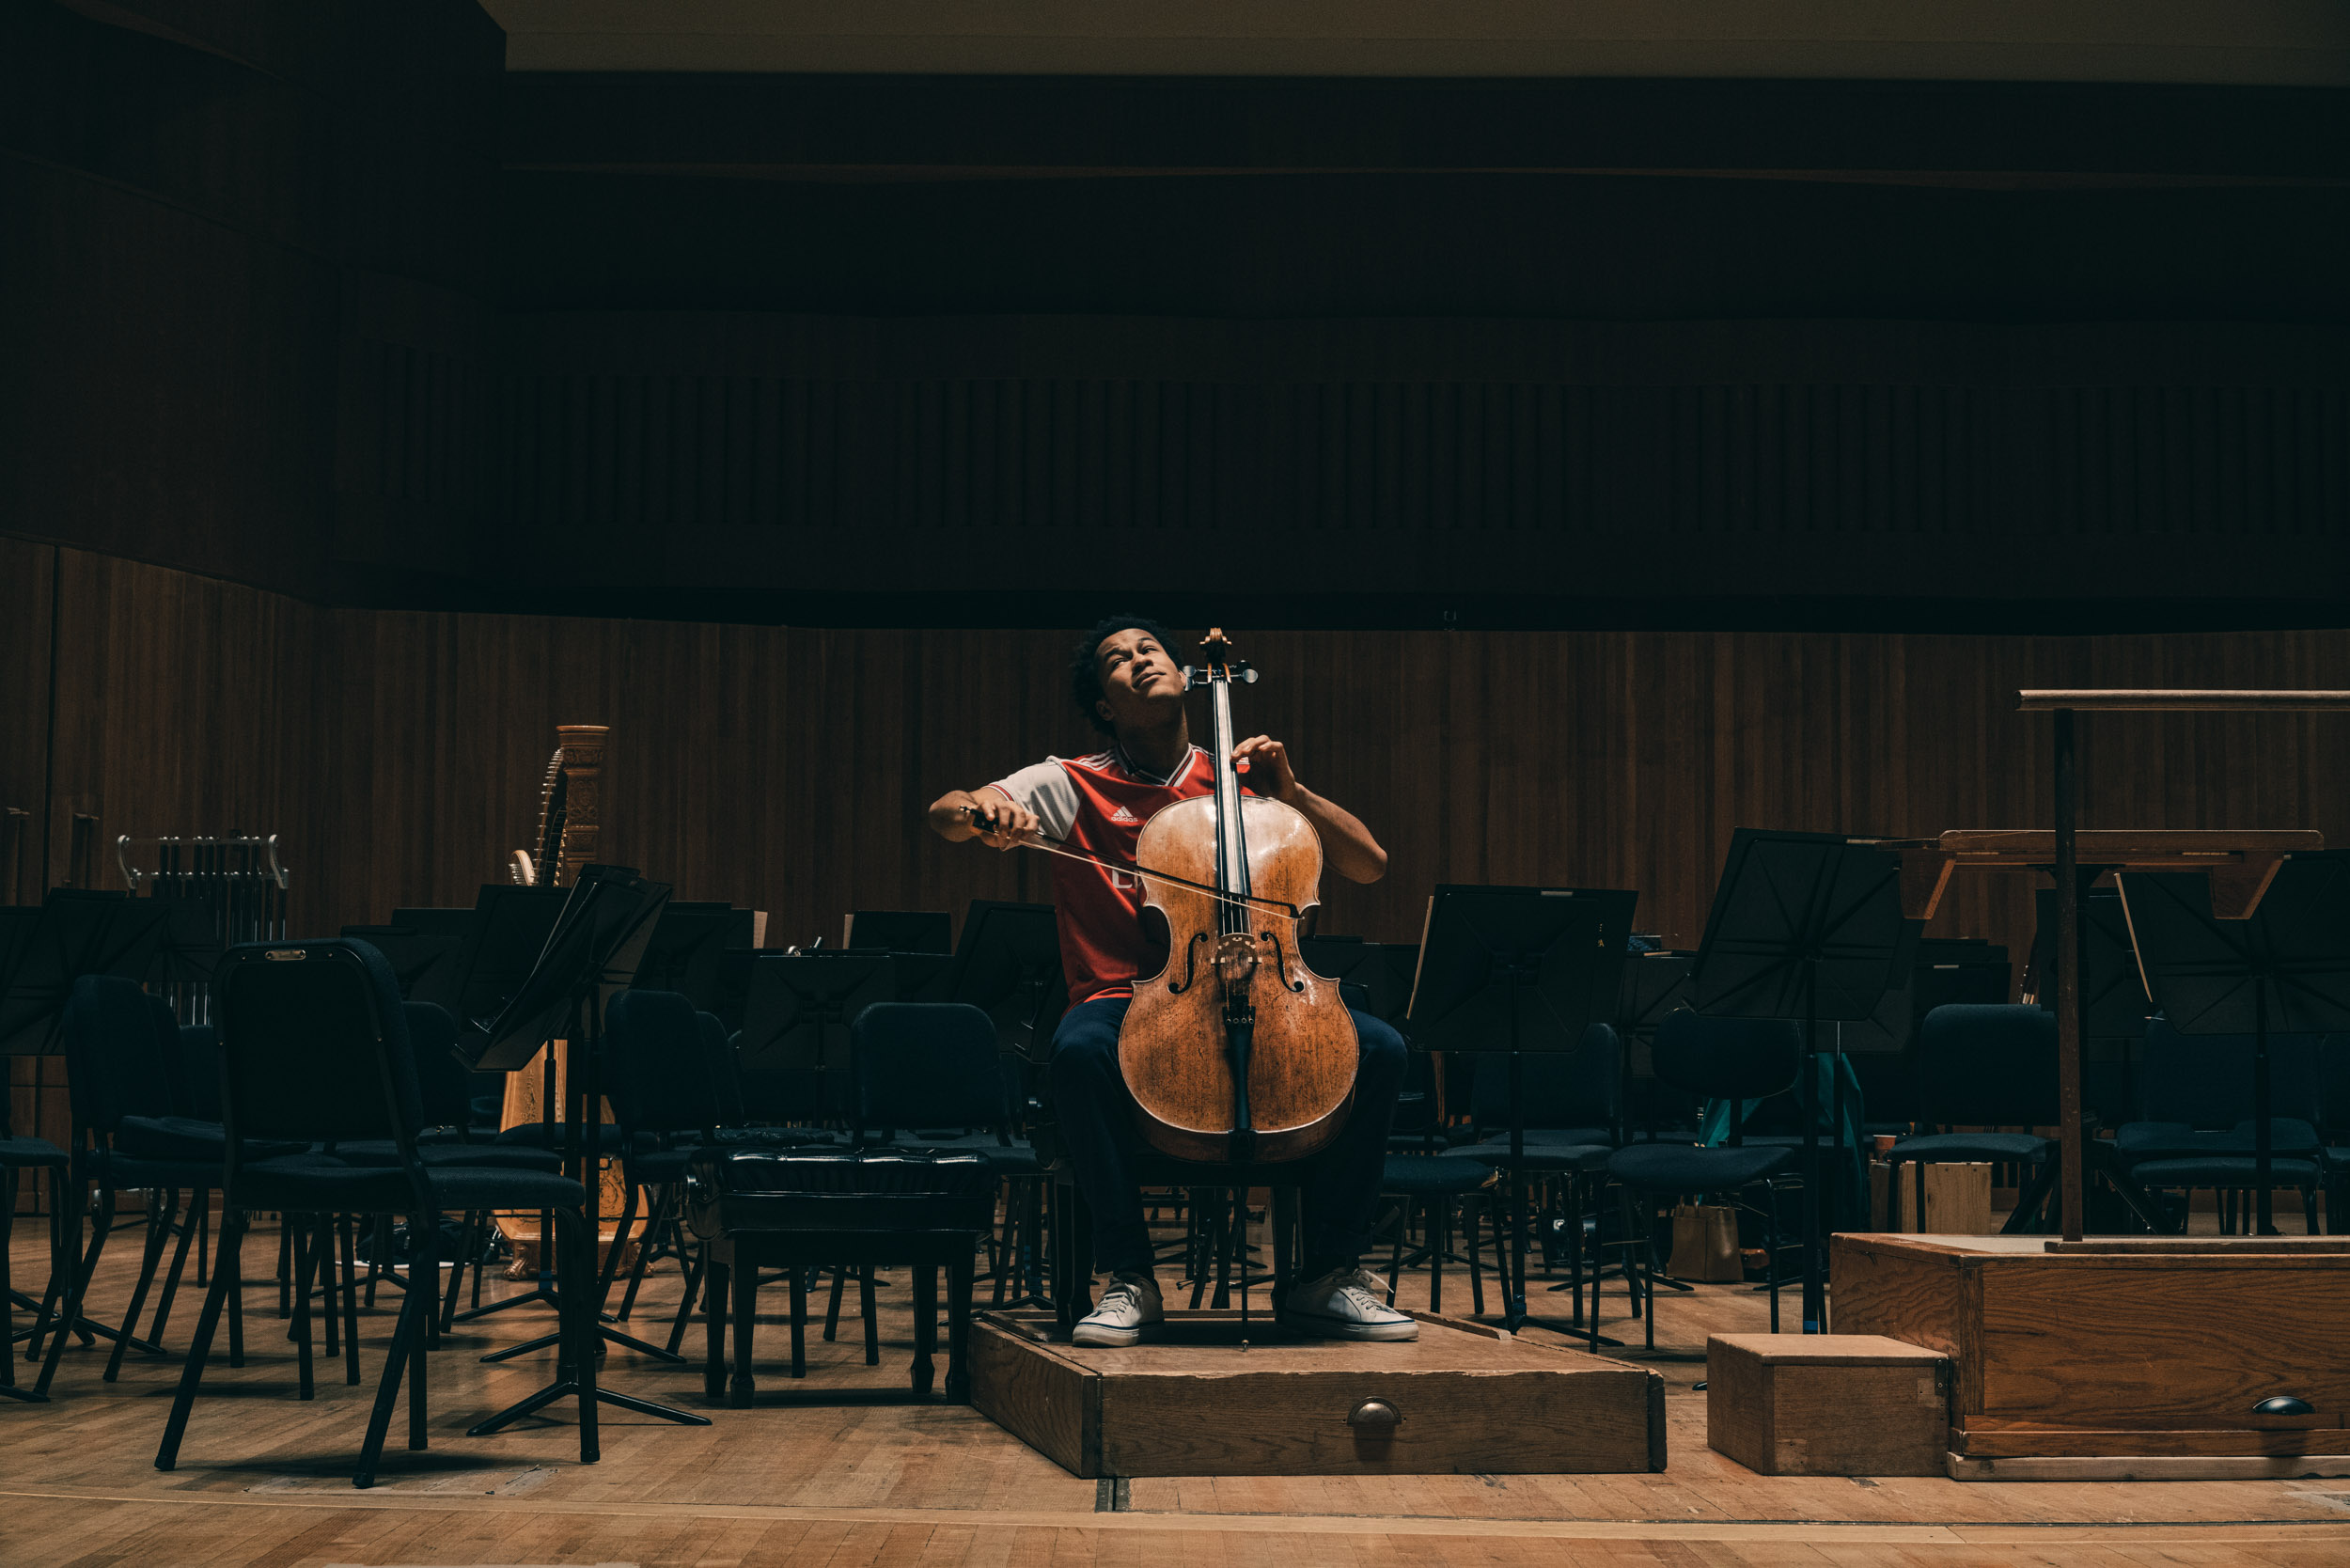 Sheku Kanneh-Mason, a famous cellist from London, rehearses before others arrive at the Baltimore Symphony Orchestra